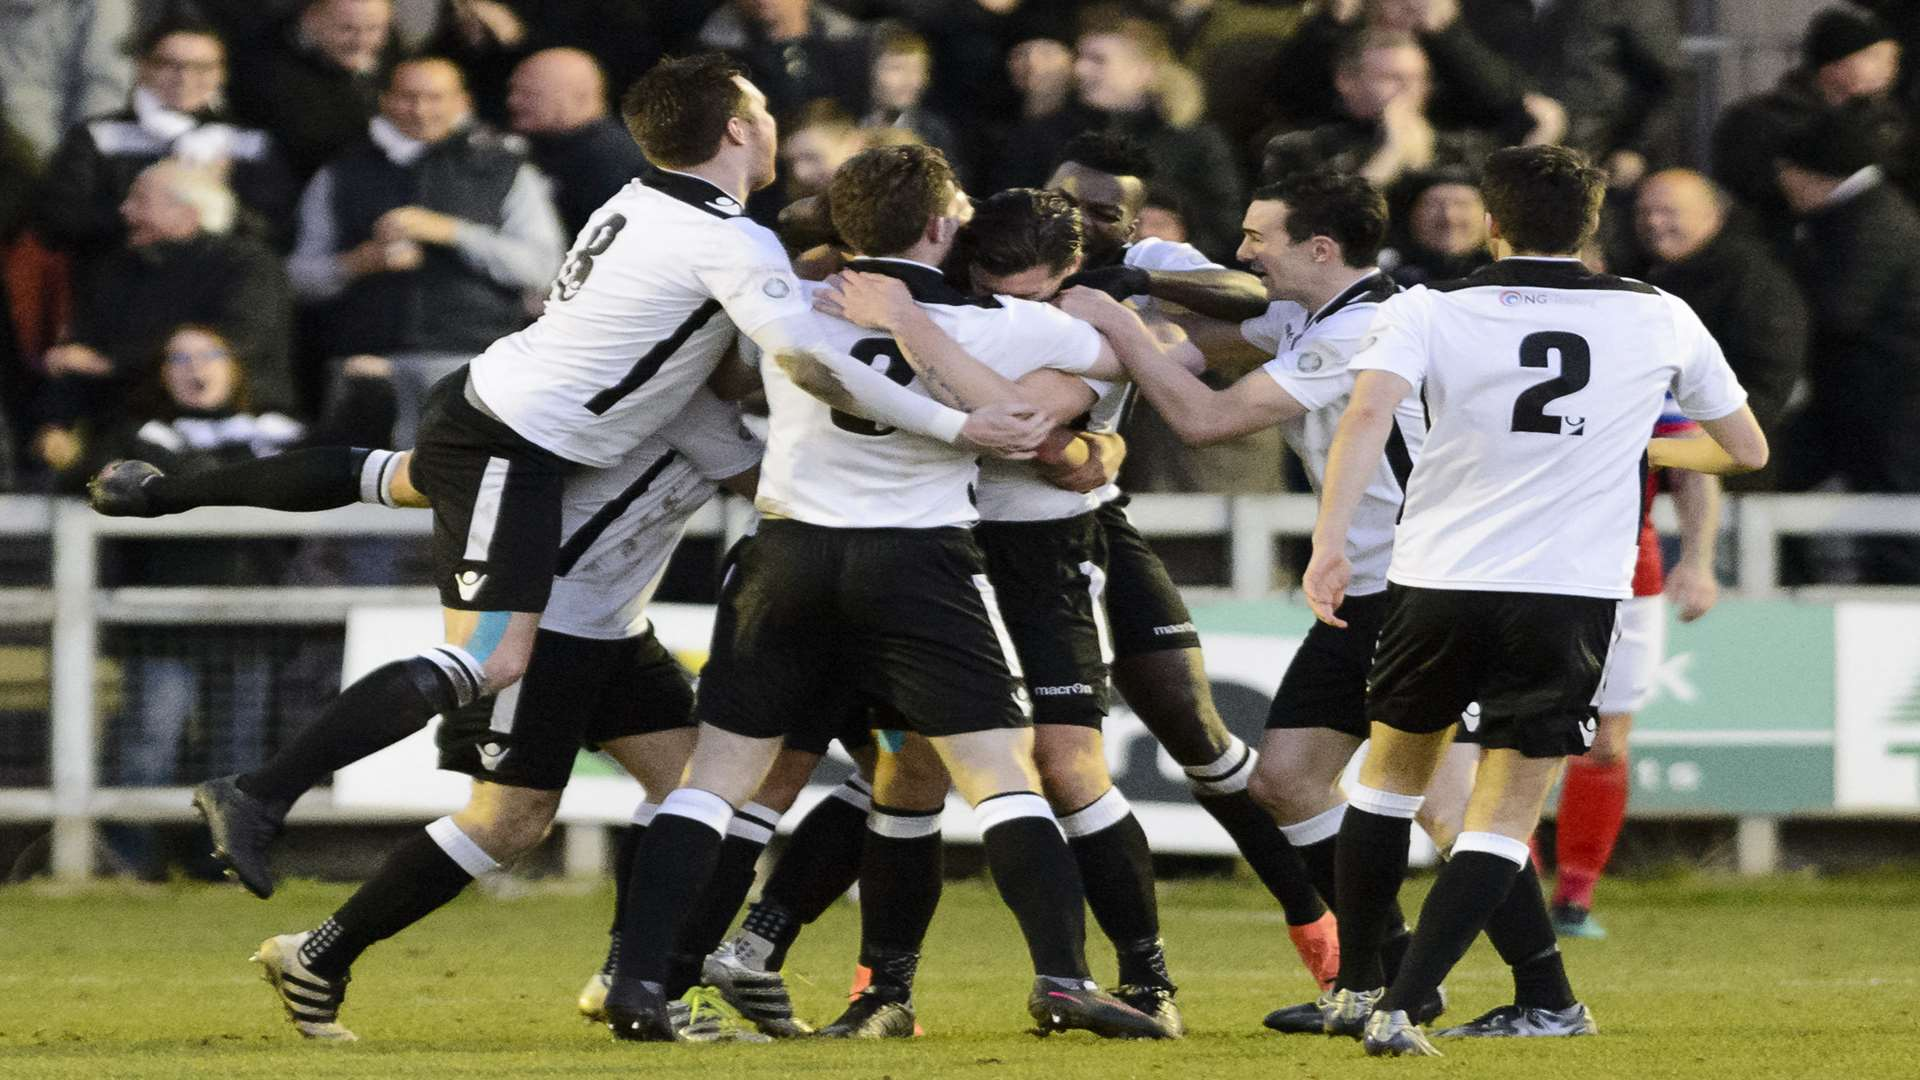 Darts celebrate Tom Bonner's goal against Ebbsfleet. Picture: Andy Payton